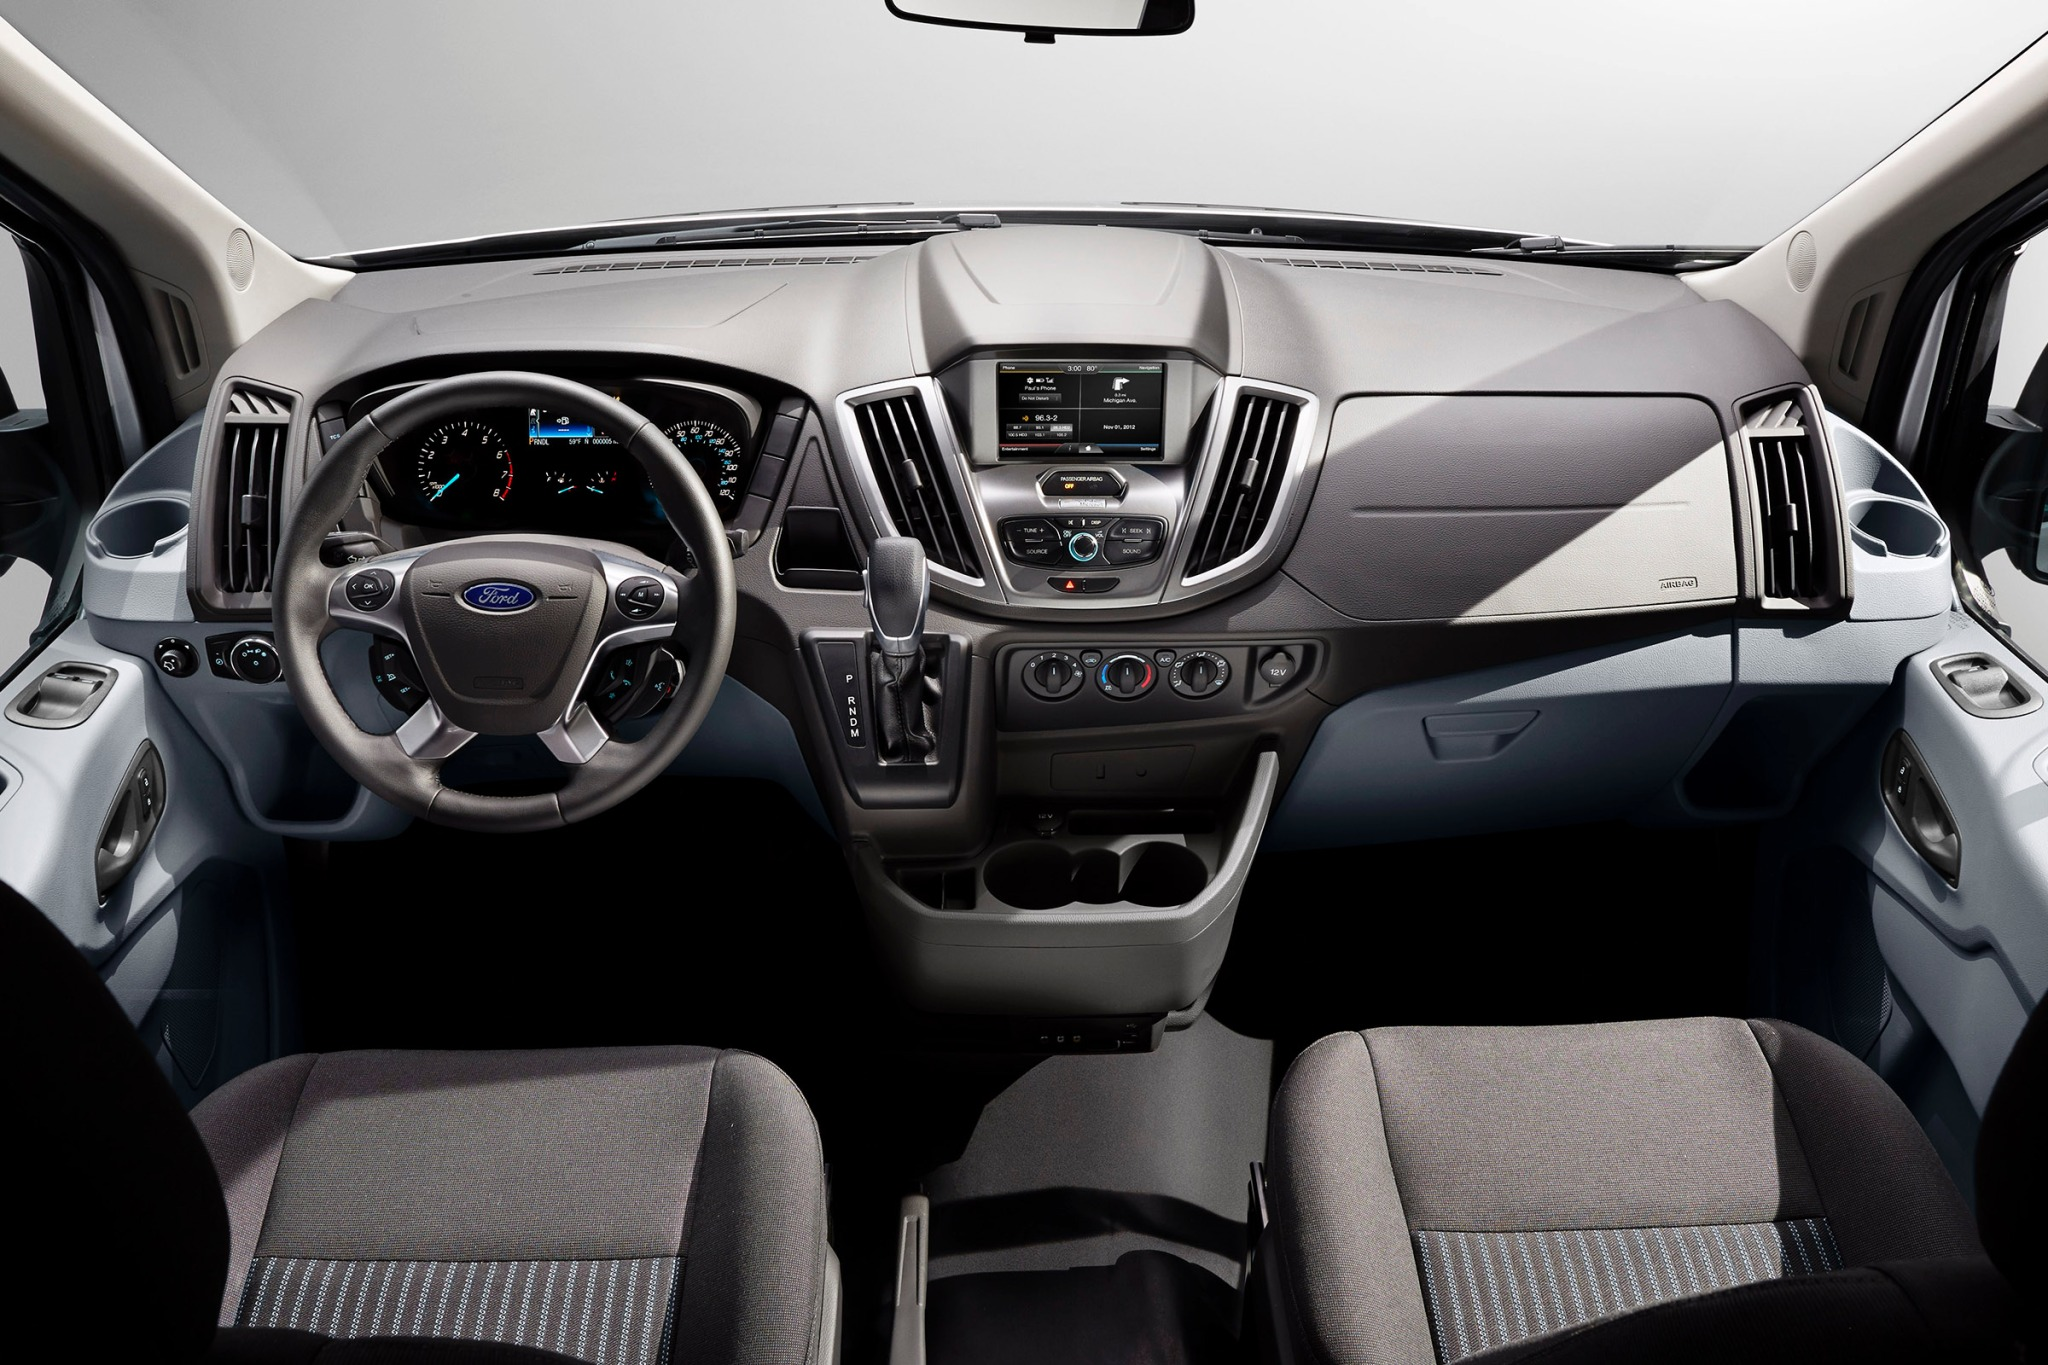 2015 Ford Transit Wagon 3 interior #4